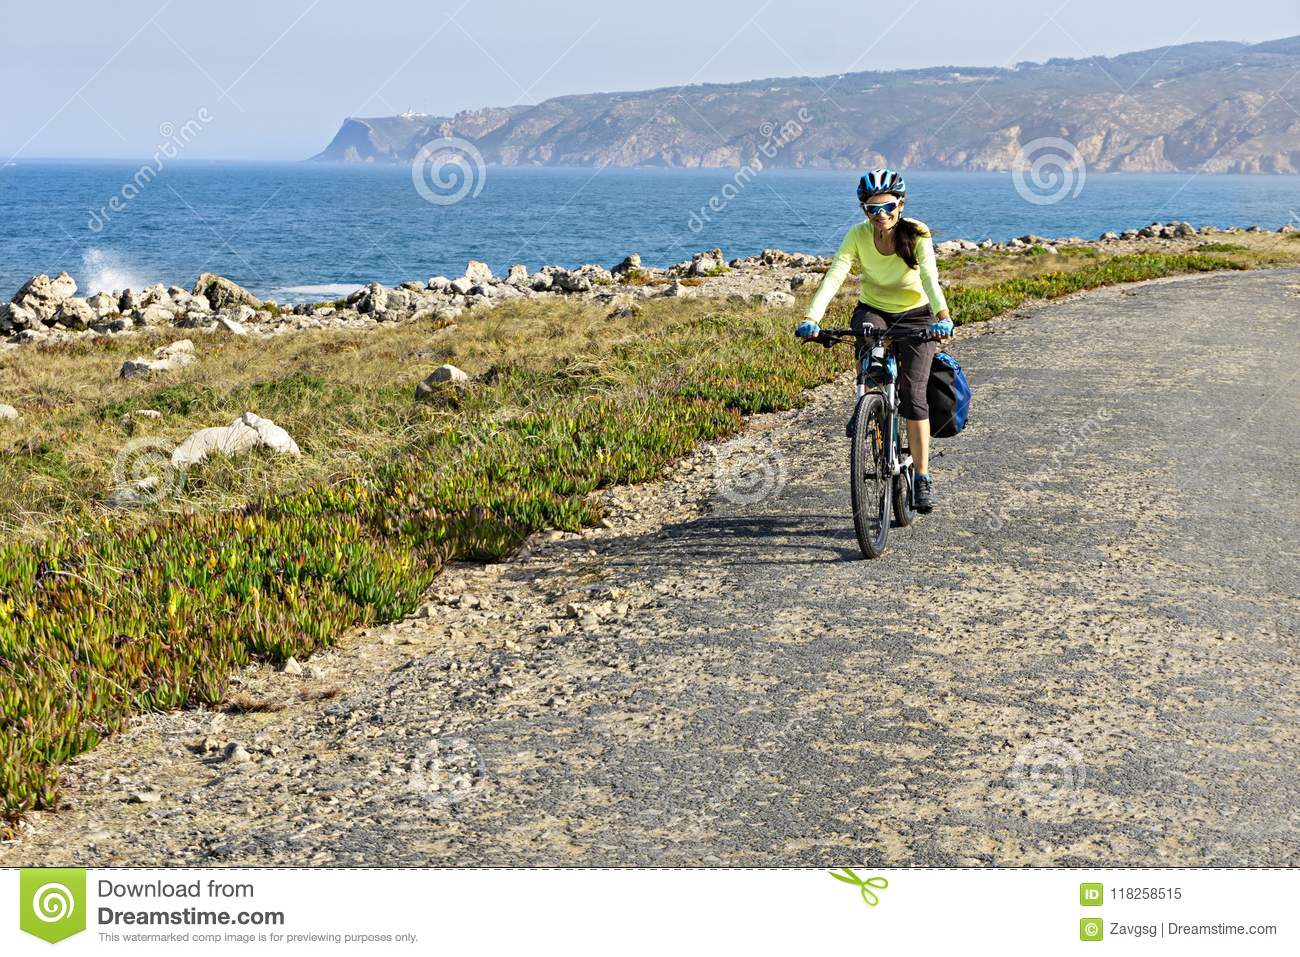 Happy female cyclist rides bicycle on road along ocean shore.